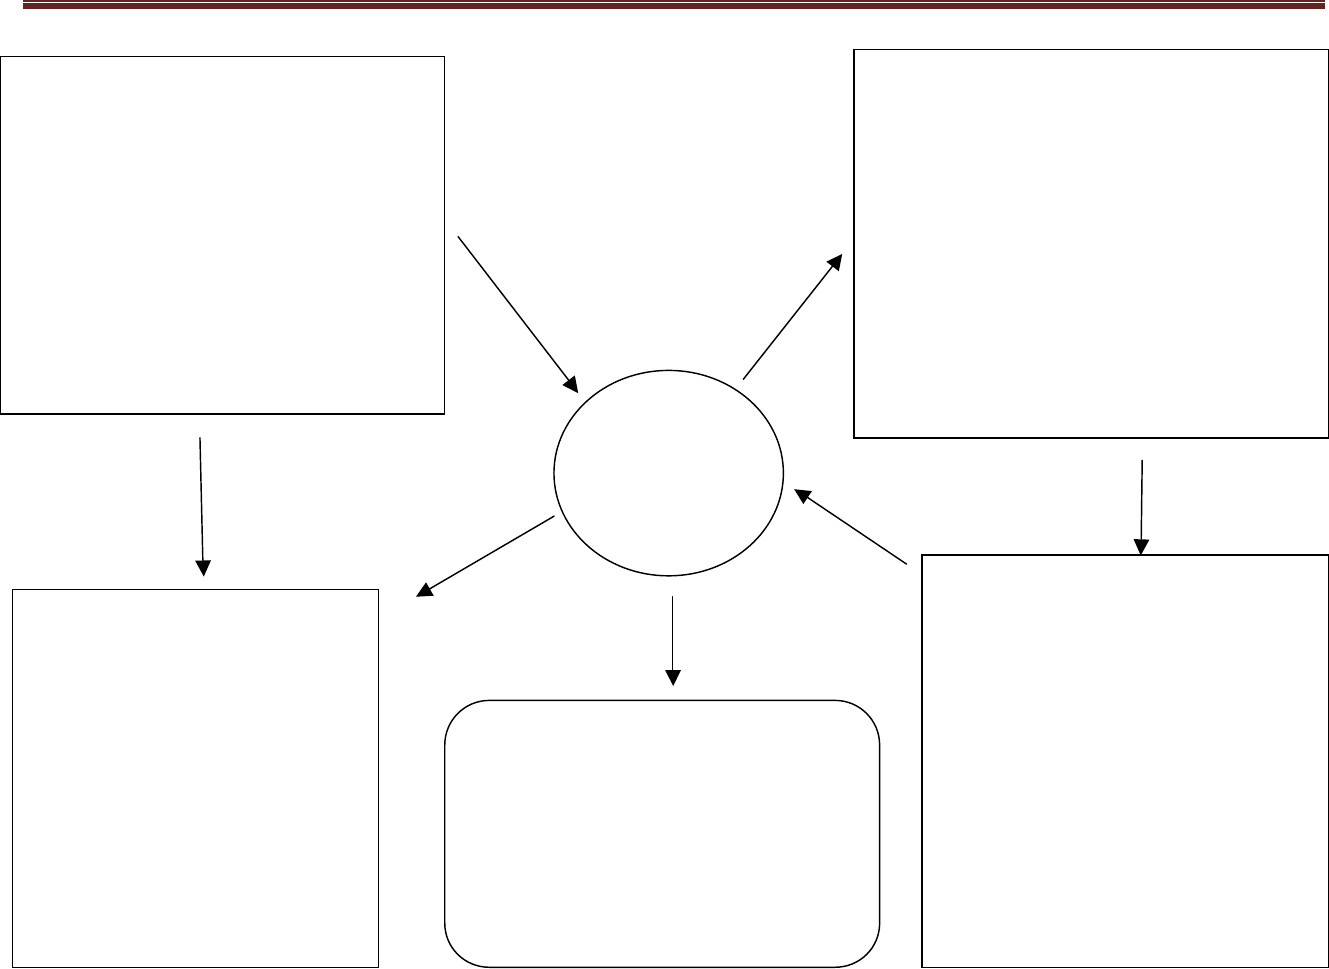 Blank Concept Map Template Concept Map Template In Word and Pdf formats